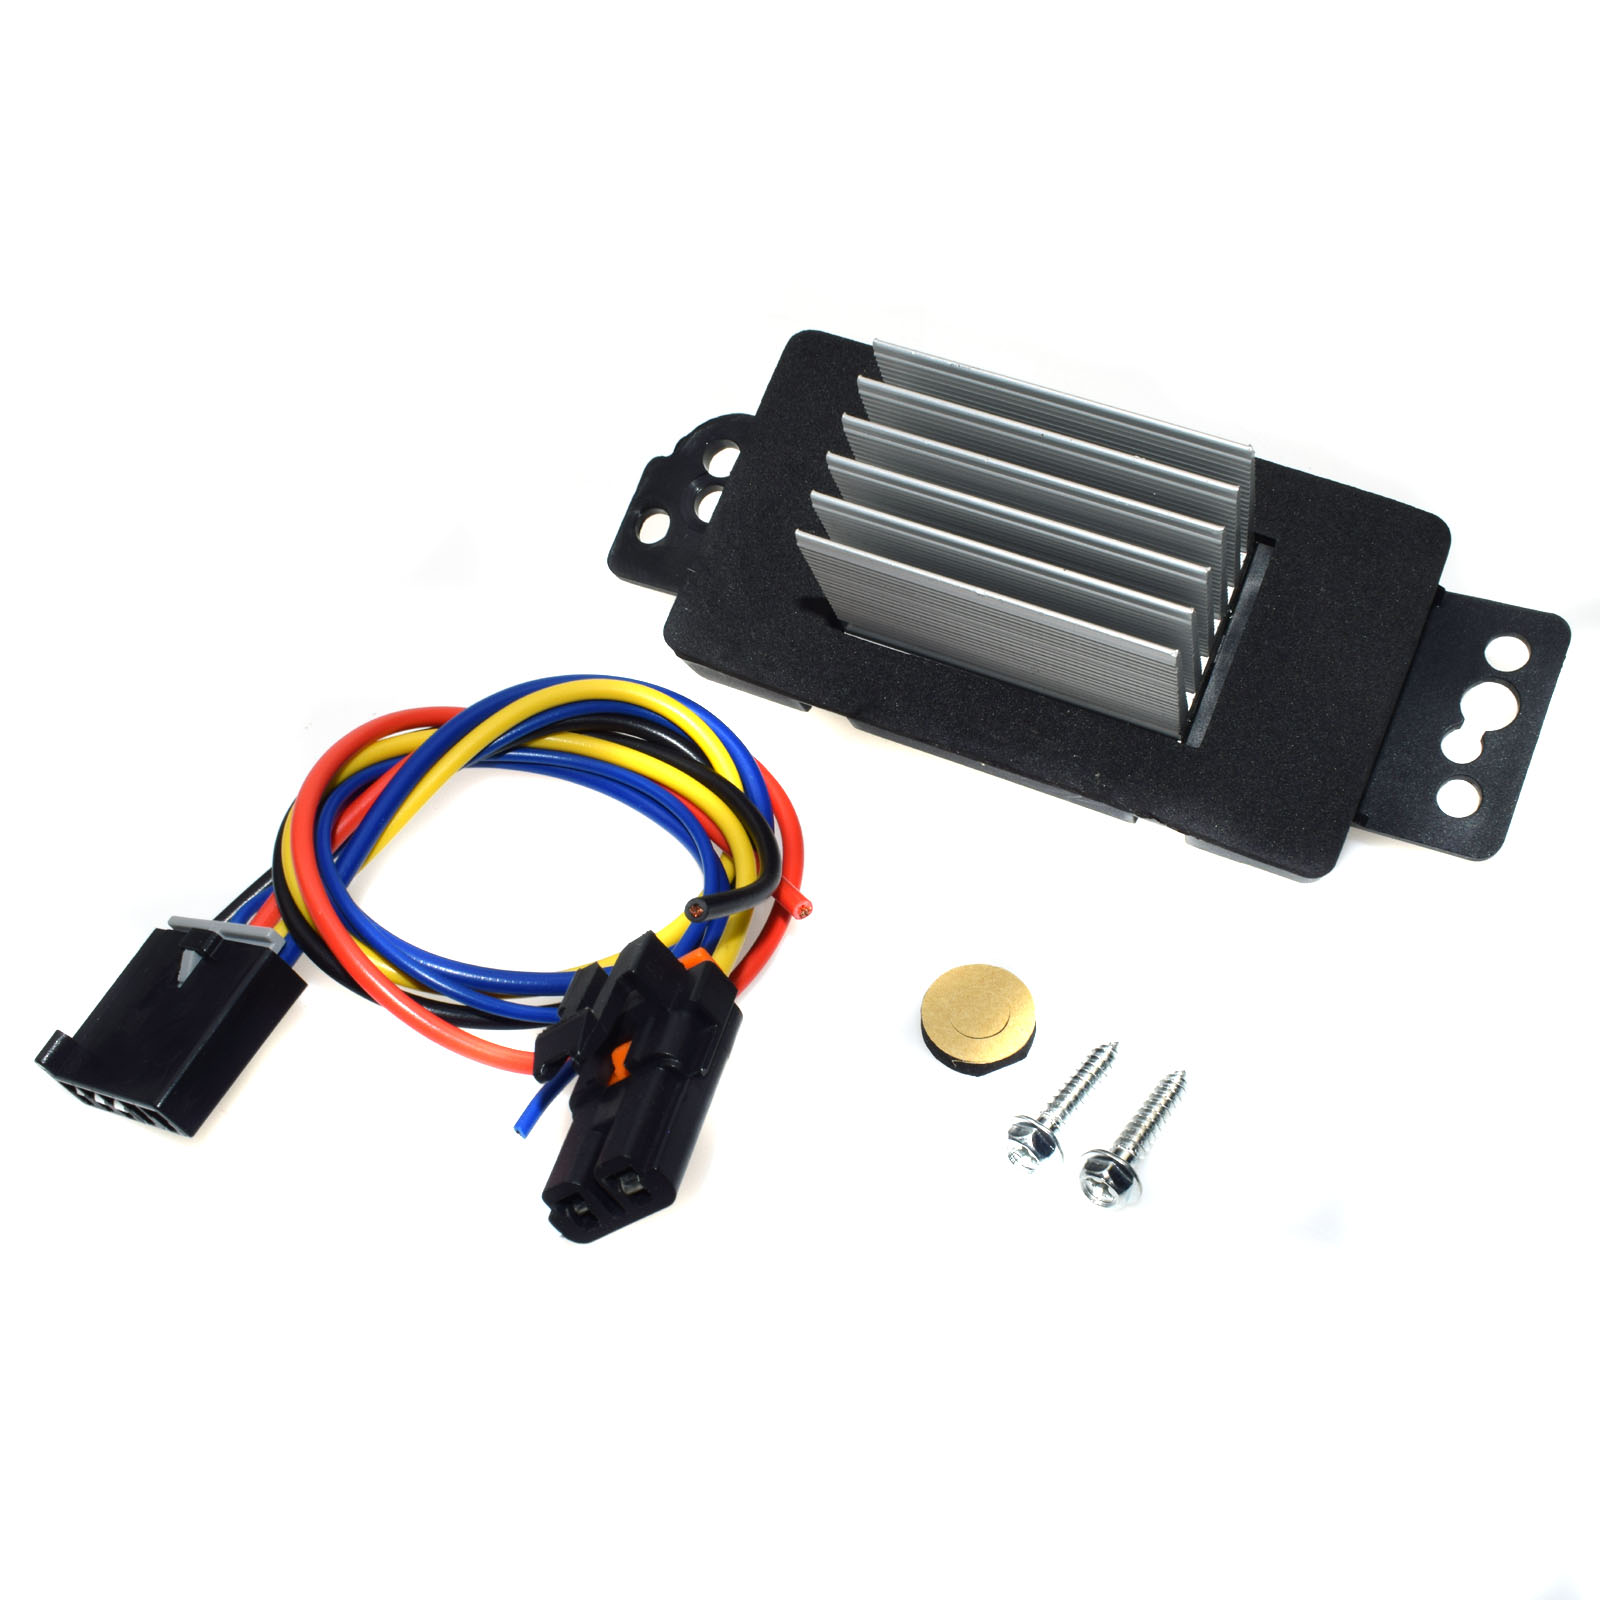 hight resolution of wolfigo new hvac blower motor resistor with plug harness 15850268 22754990 ru359 1580888 for pontiac chevrolet impala buick in blower motors from